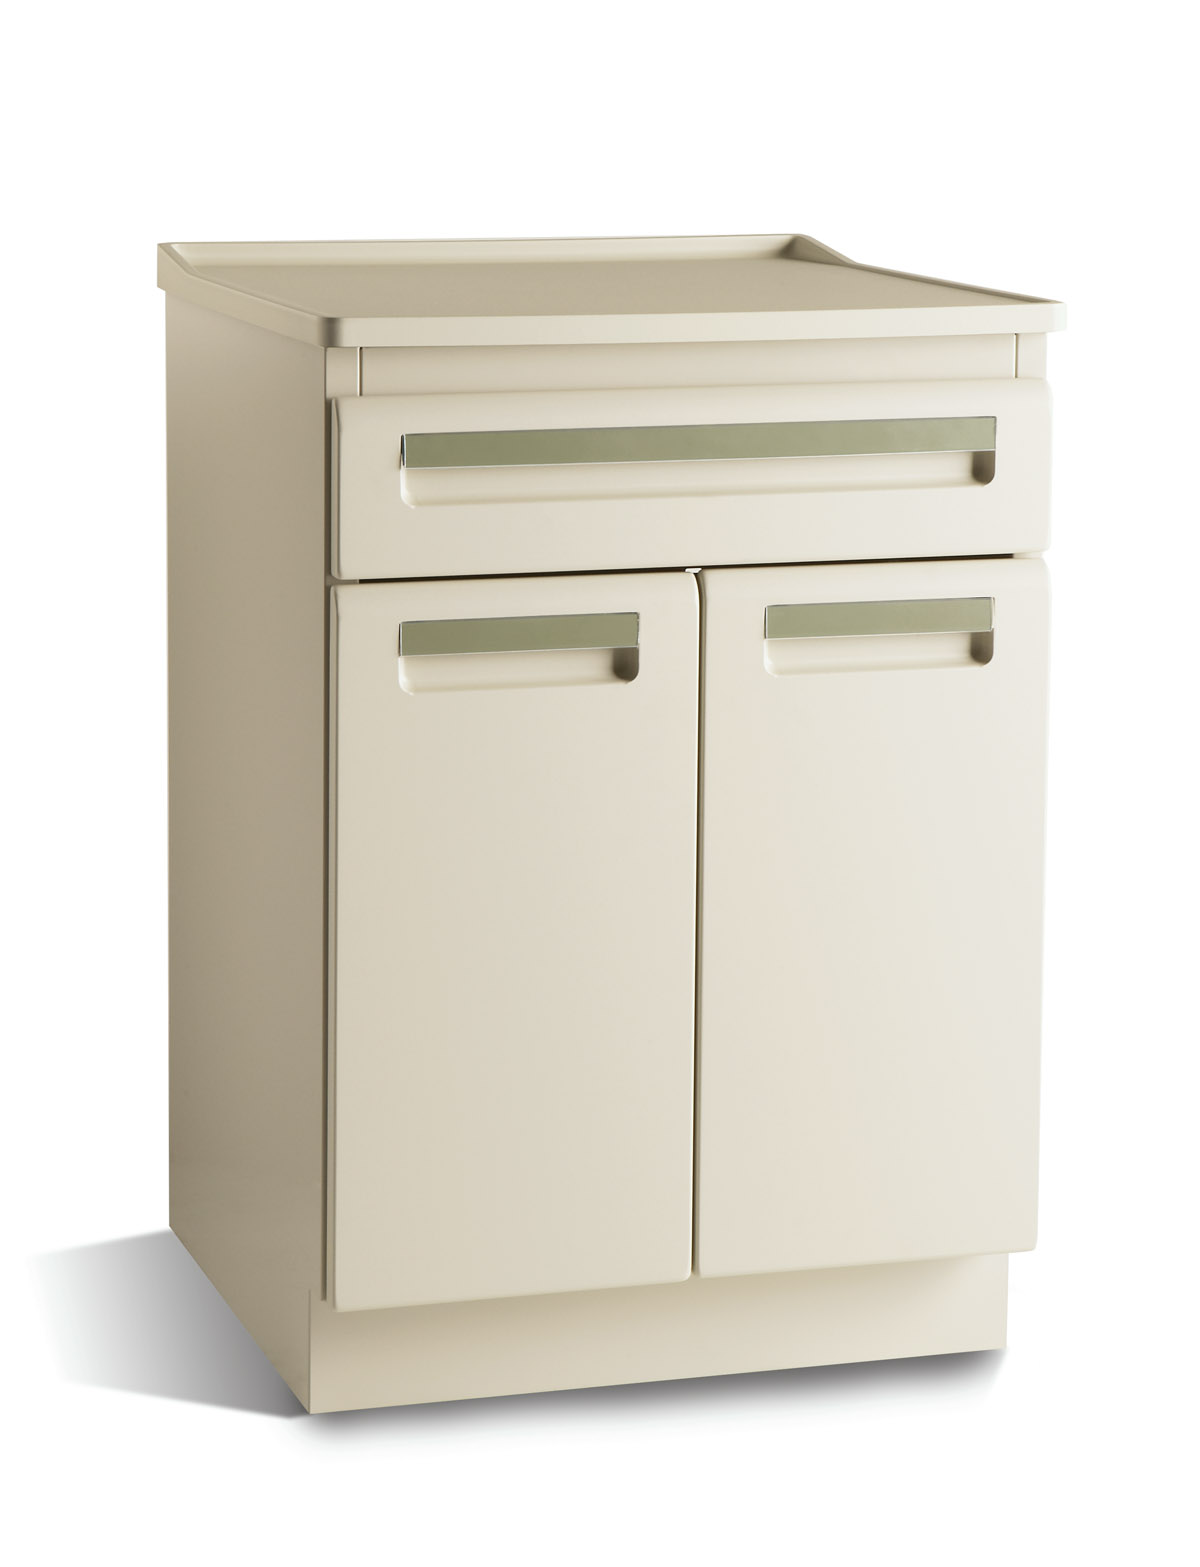 CABINET, TREATMENT, MIDMARK 6060, W/SHELF, SHARK GREY